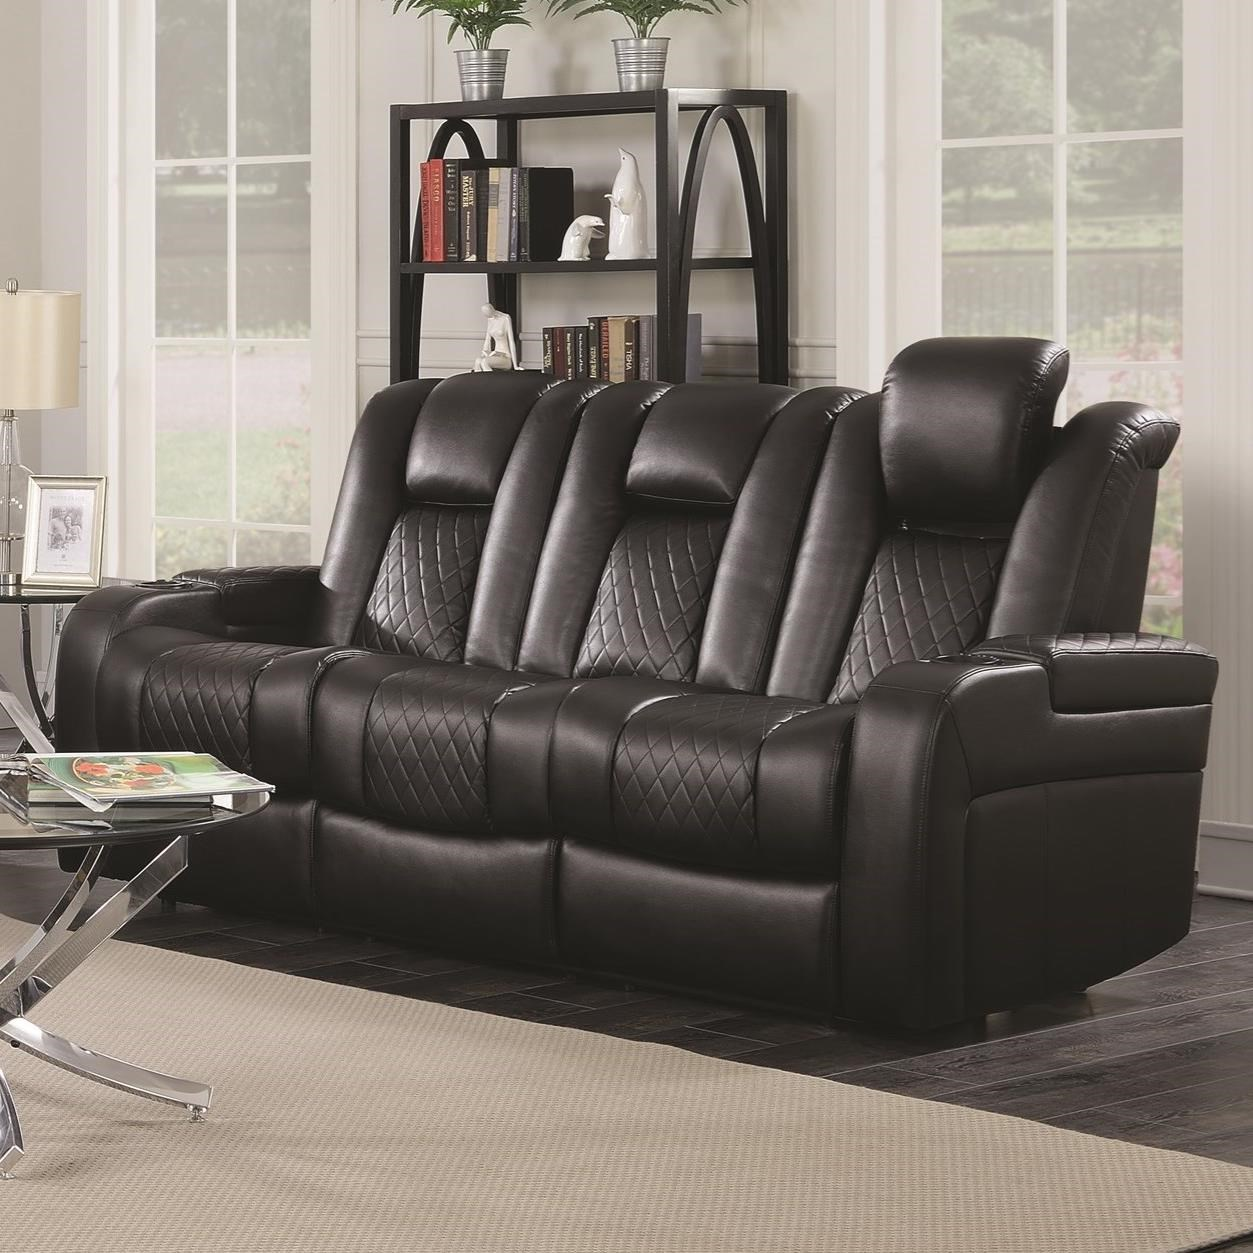 Delangelo Theater Power Leather Reclining Sofa With Cup Holders